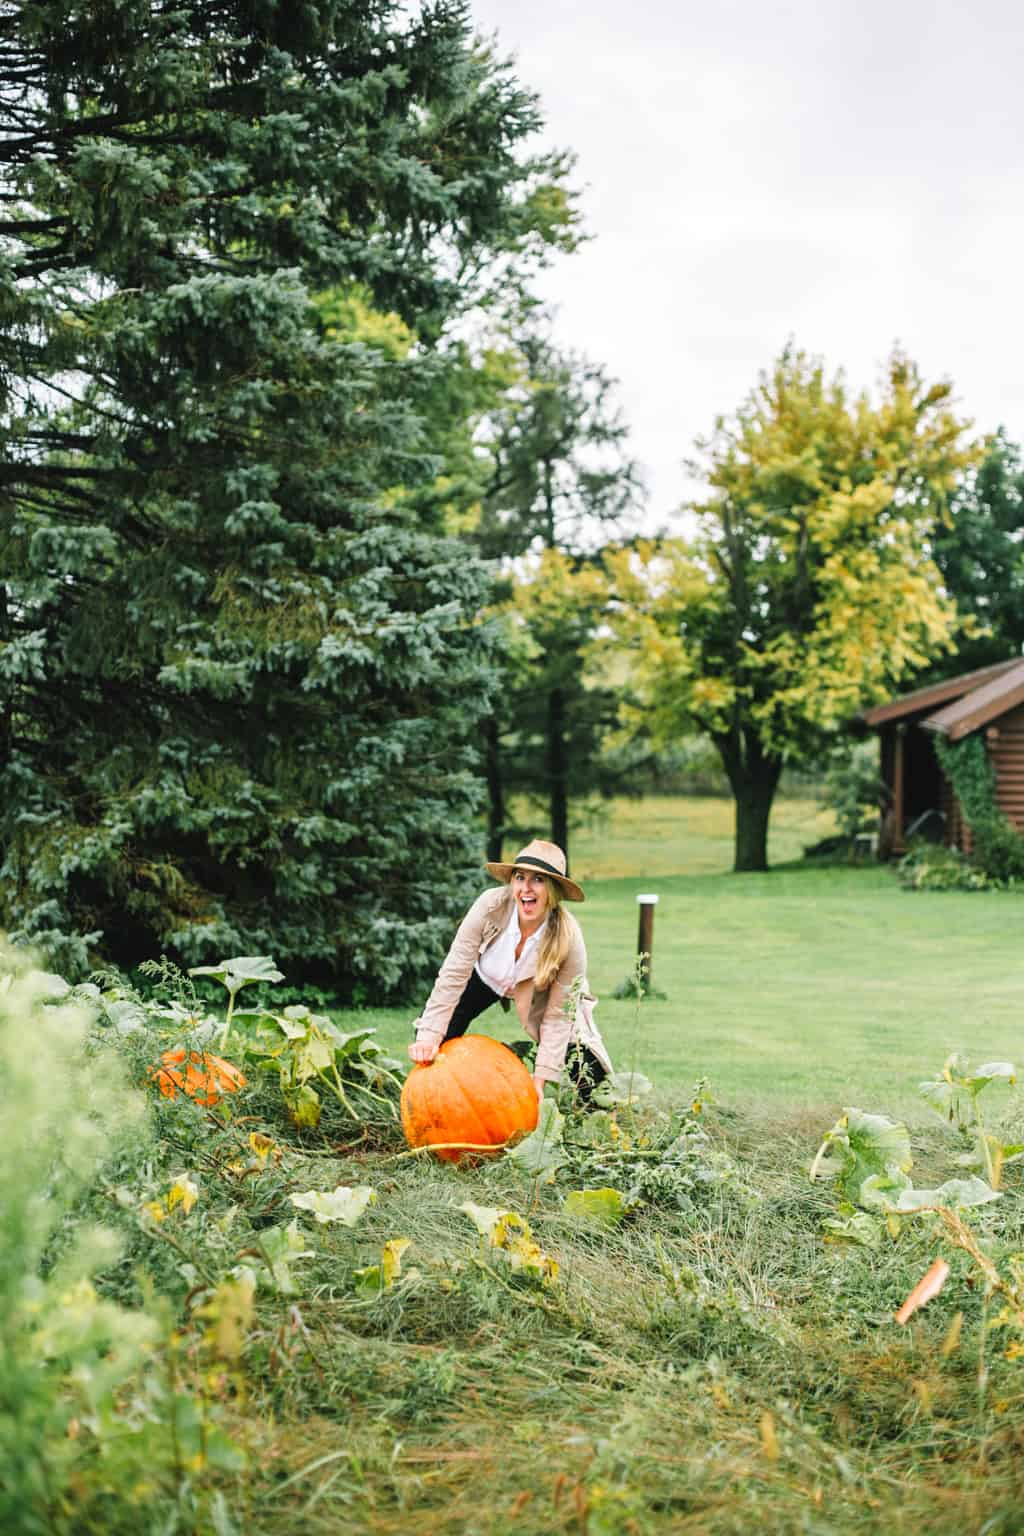 Girl holding a pumpkin on a farm.